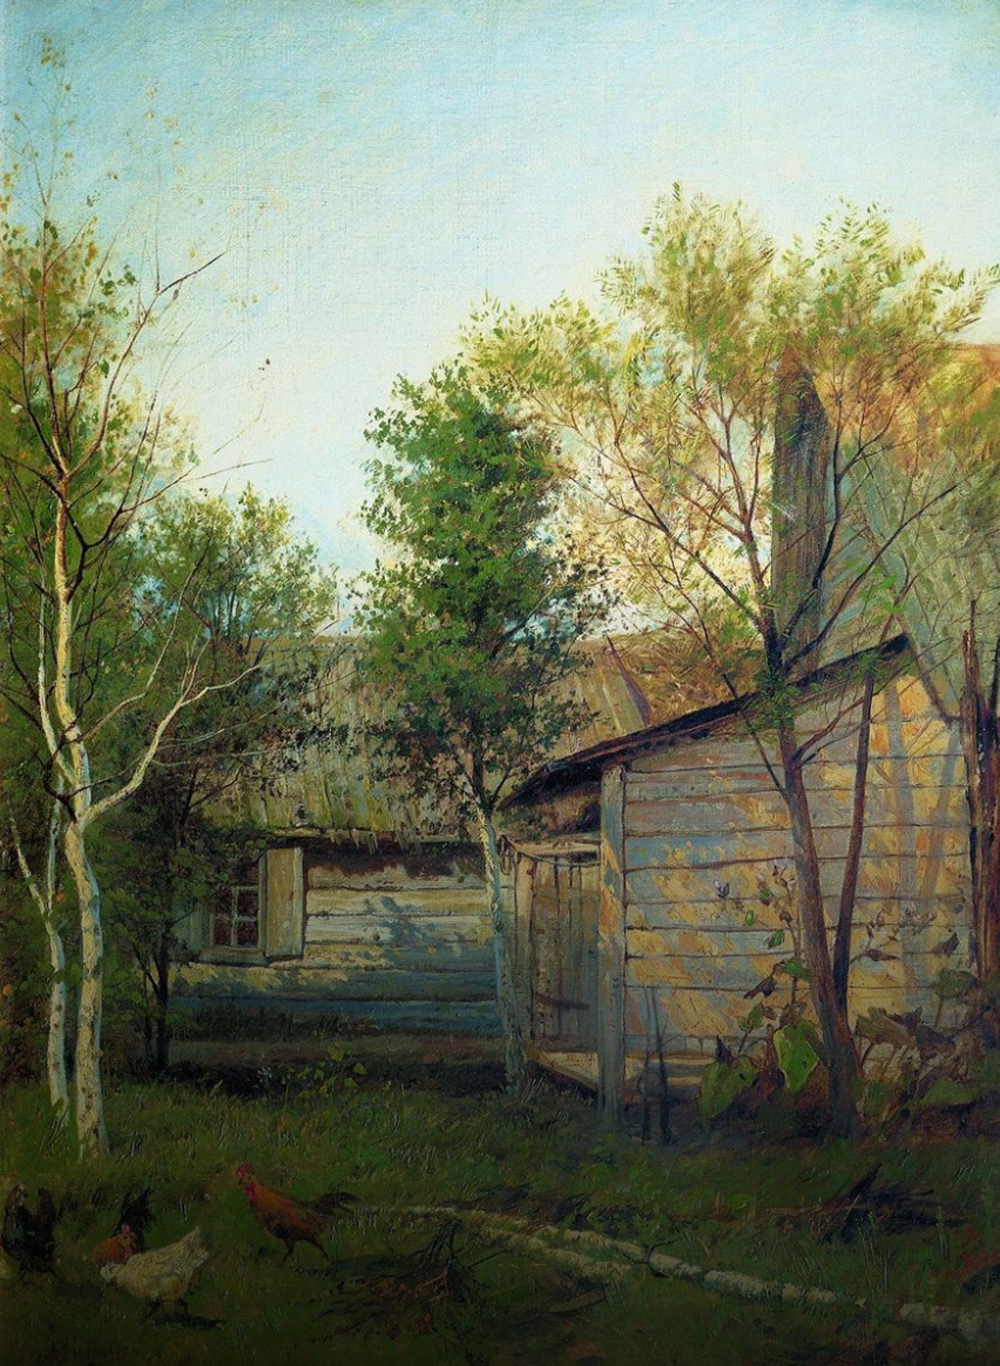 Sunny Day by Isaac Levitan